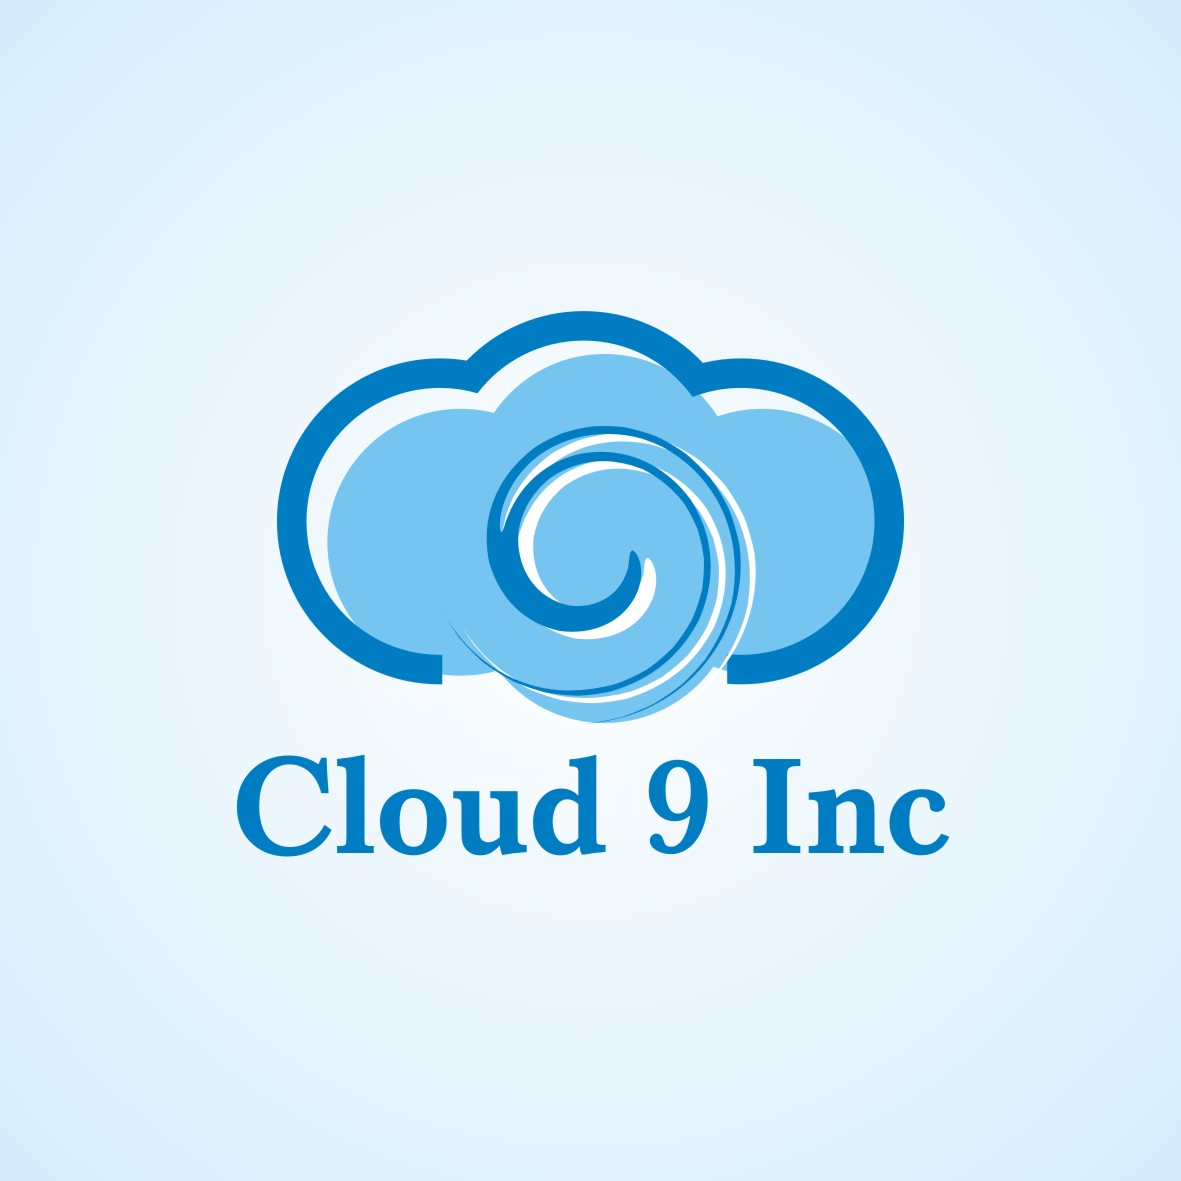 Logo Design by arteo_design - Entry No. 27 in the Logo Design Contest Unique Logo Design Wanted for Cloud 9 Inc.